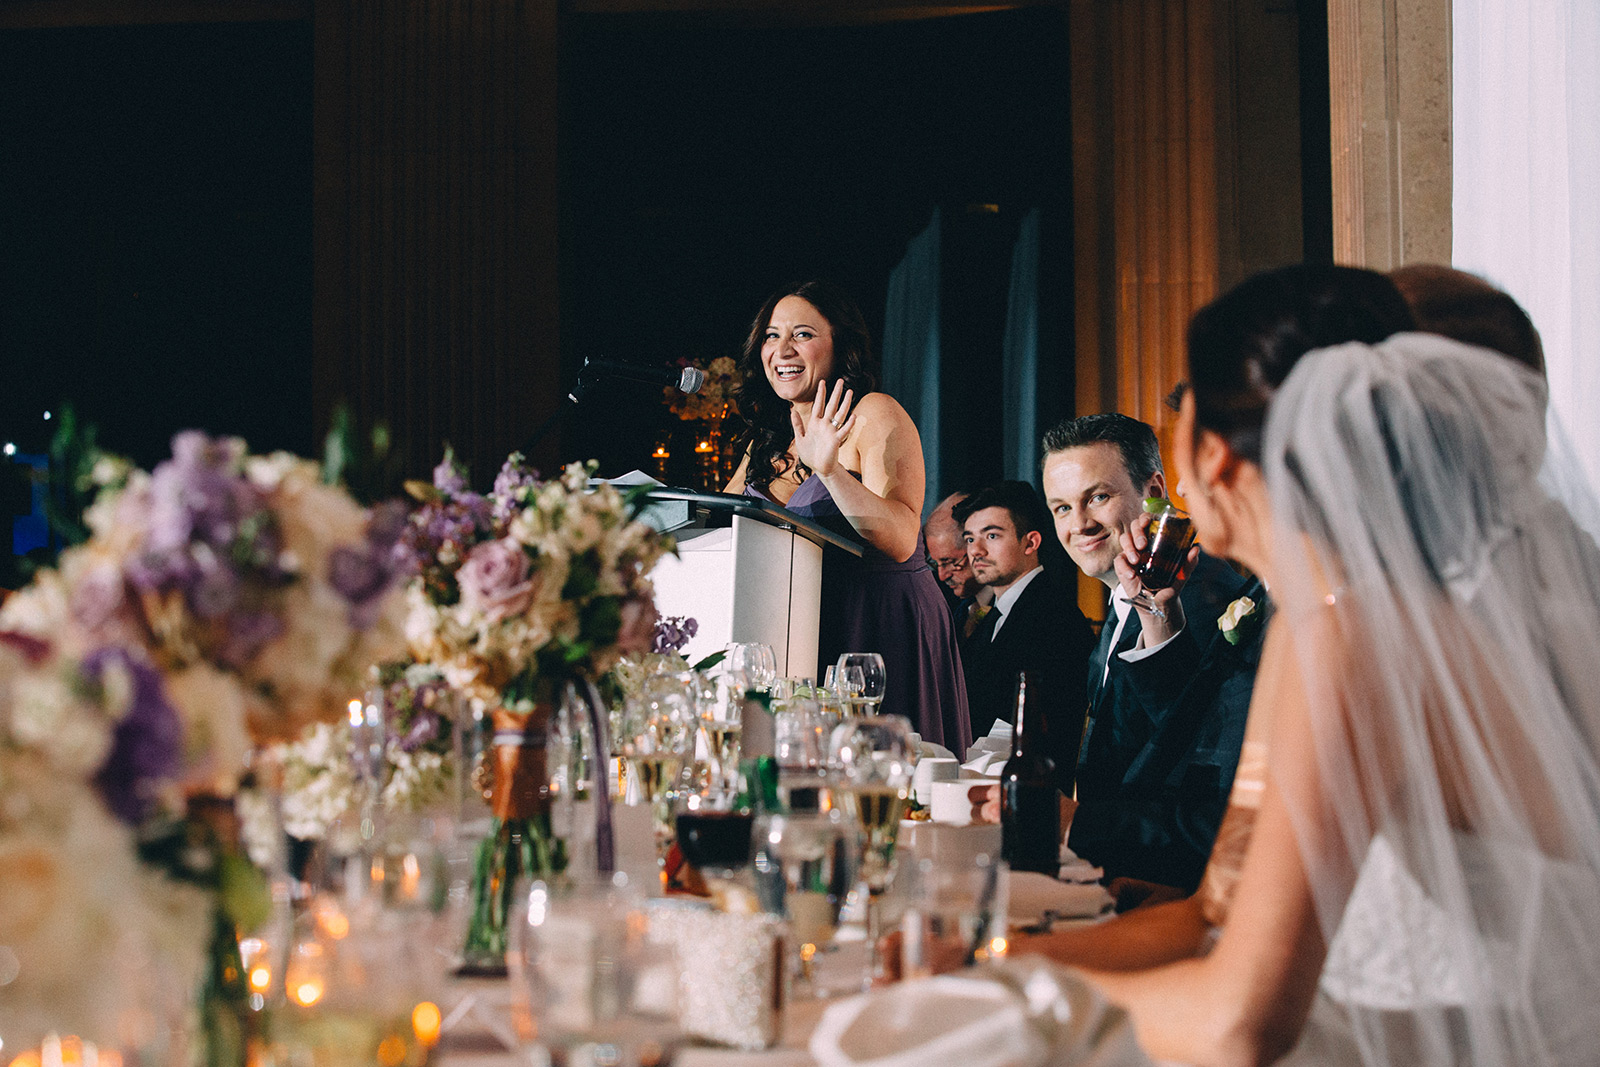 One-King-West-Toronto-wedding-photography_Sam-Wong-of-Visual-Cravings_KnR-38